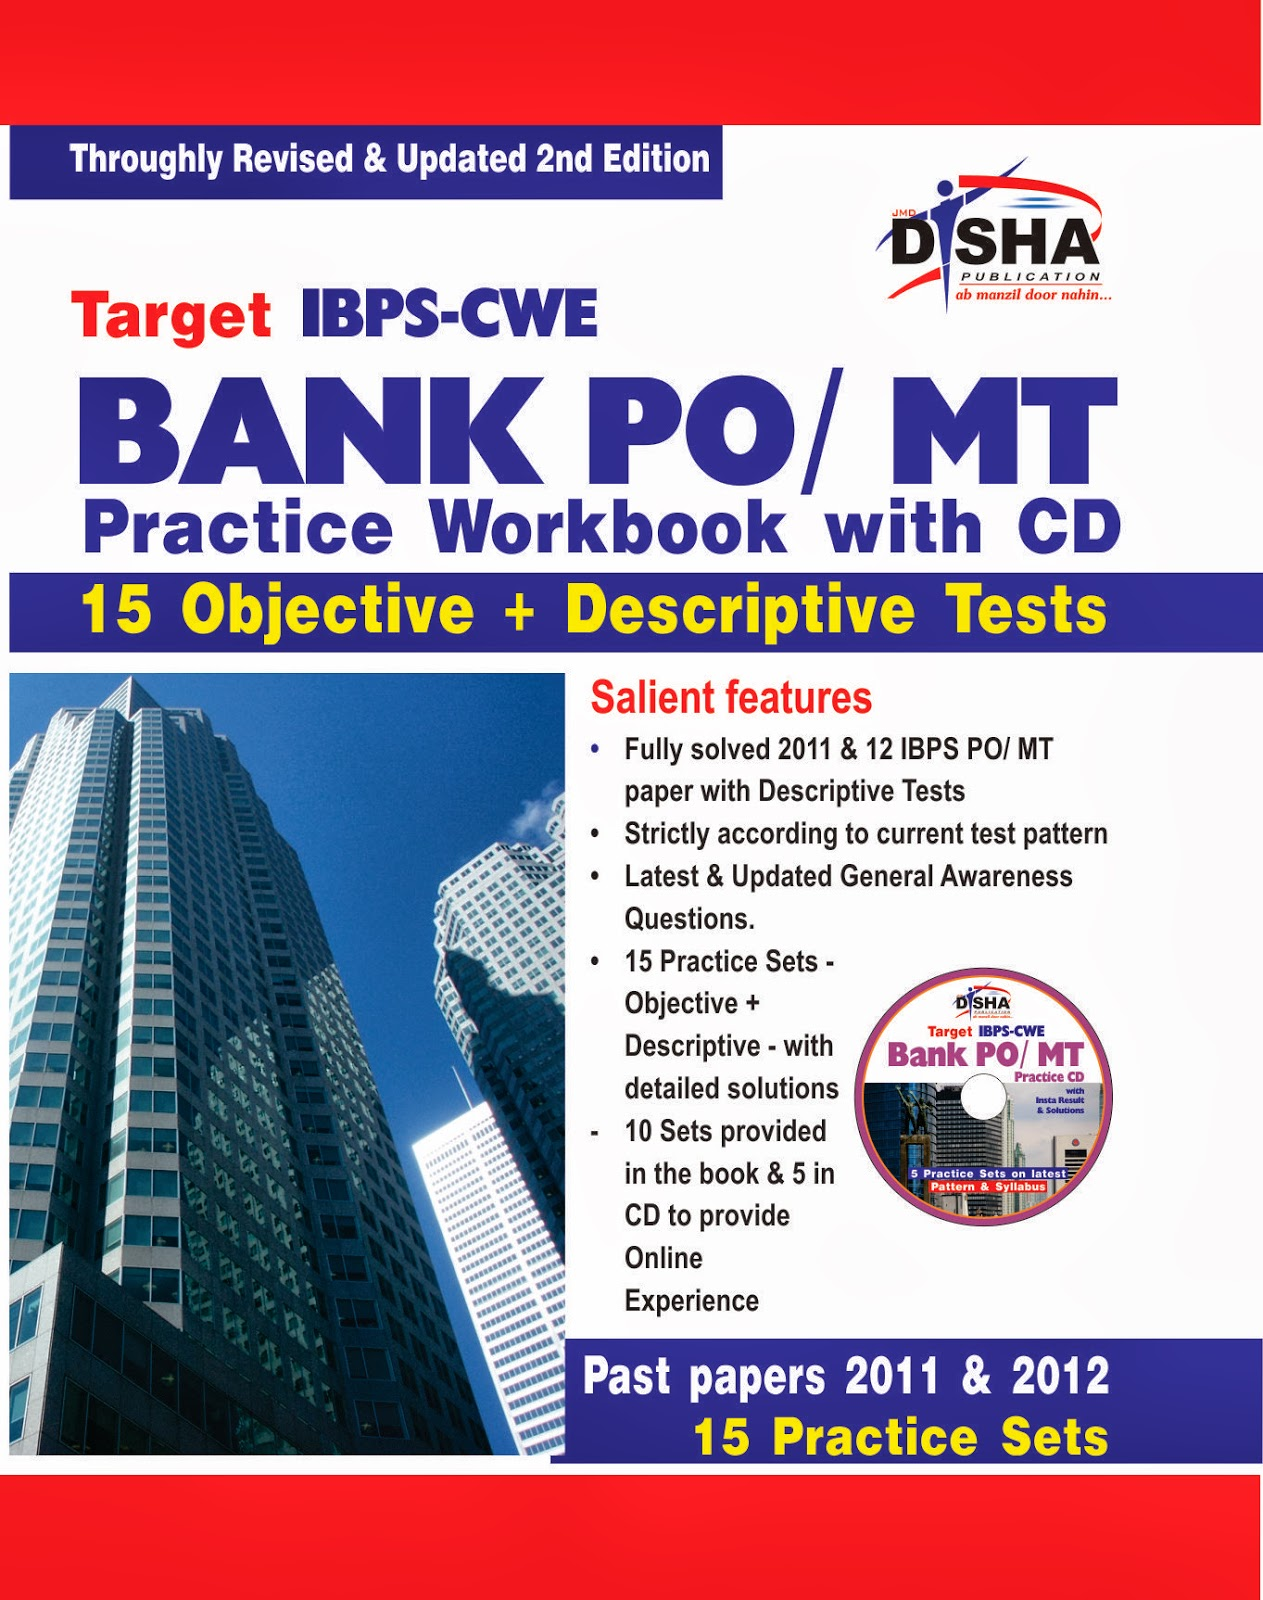 descriptive papers for bank po exams Browse and read descriptive s for bank po exams with answers descriptive s for bank po exams with answers how a simple idea by reading can improve you to be a.